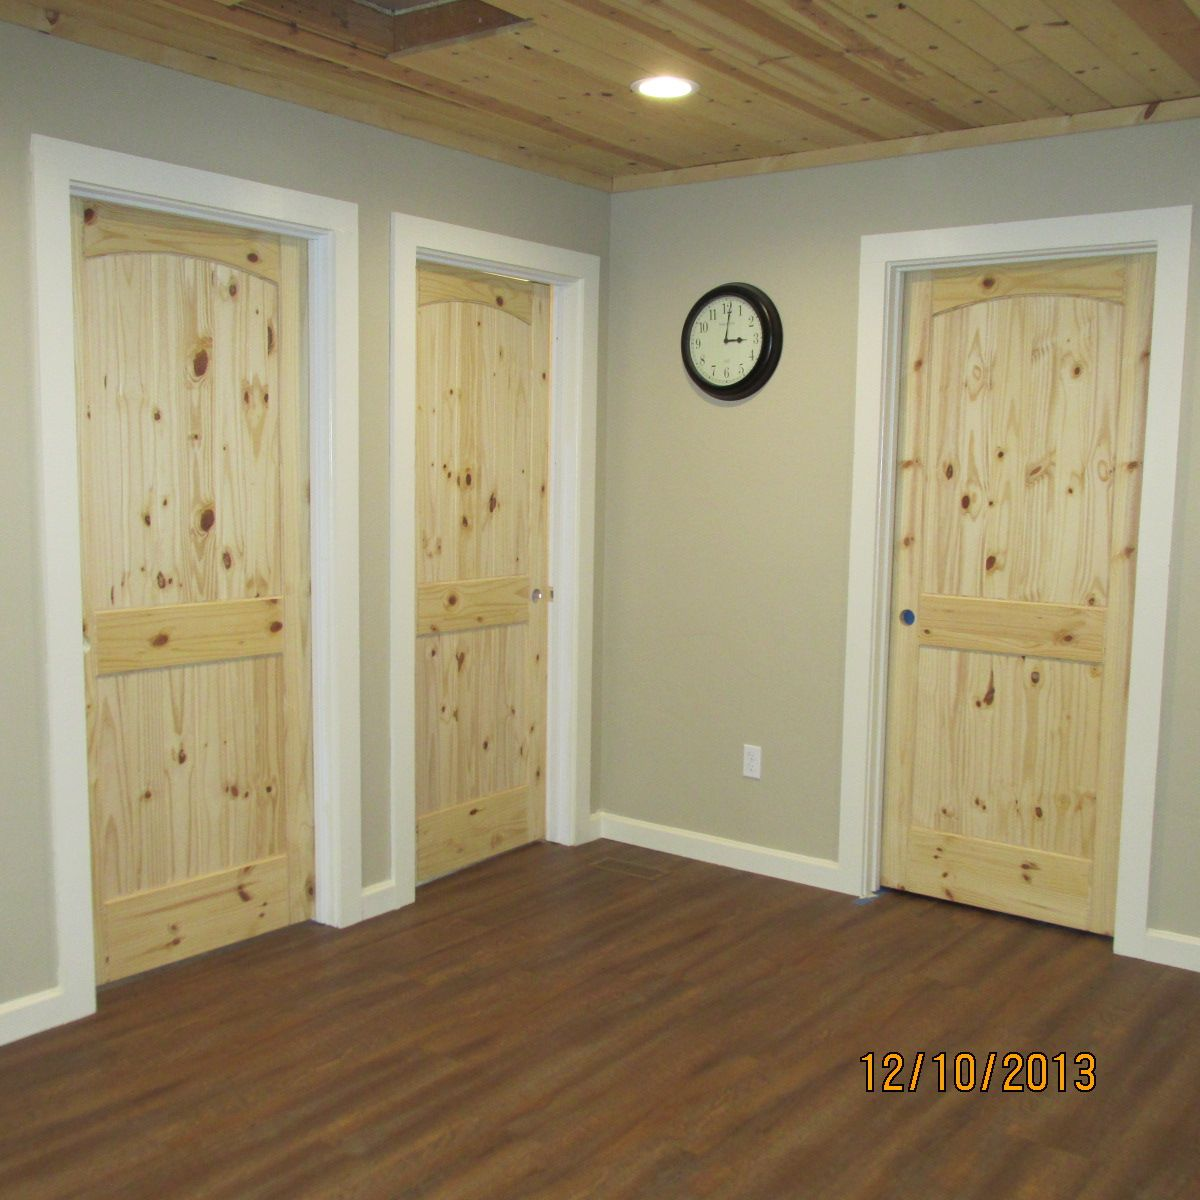 White interior doors with wood trim - Find This Pin And More On Interior Doors